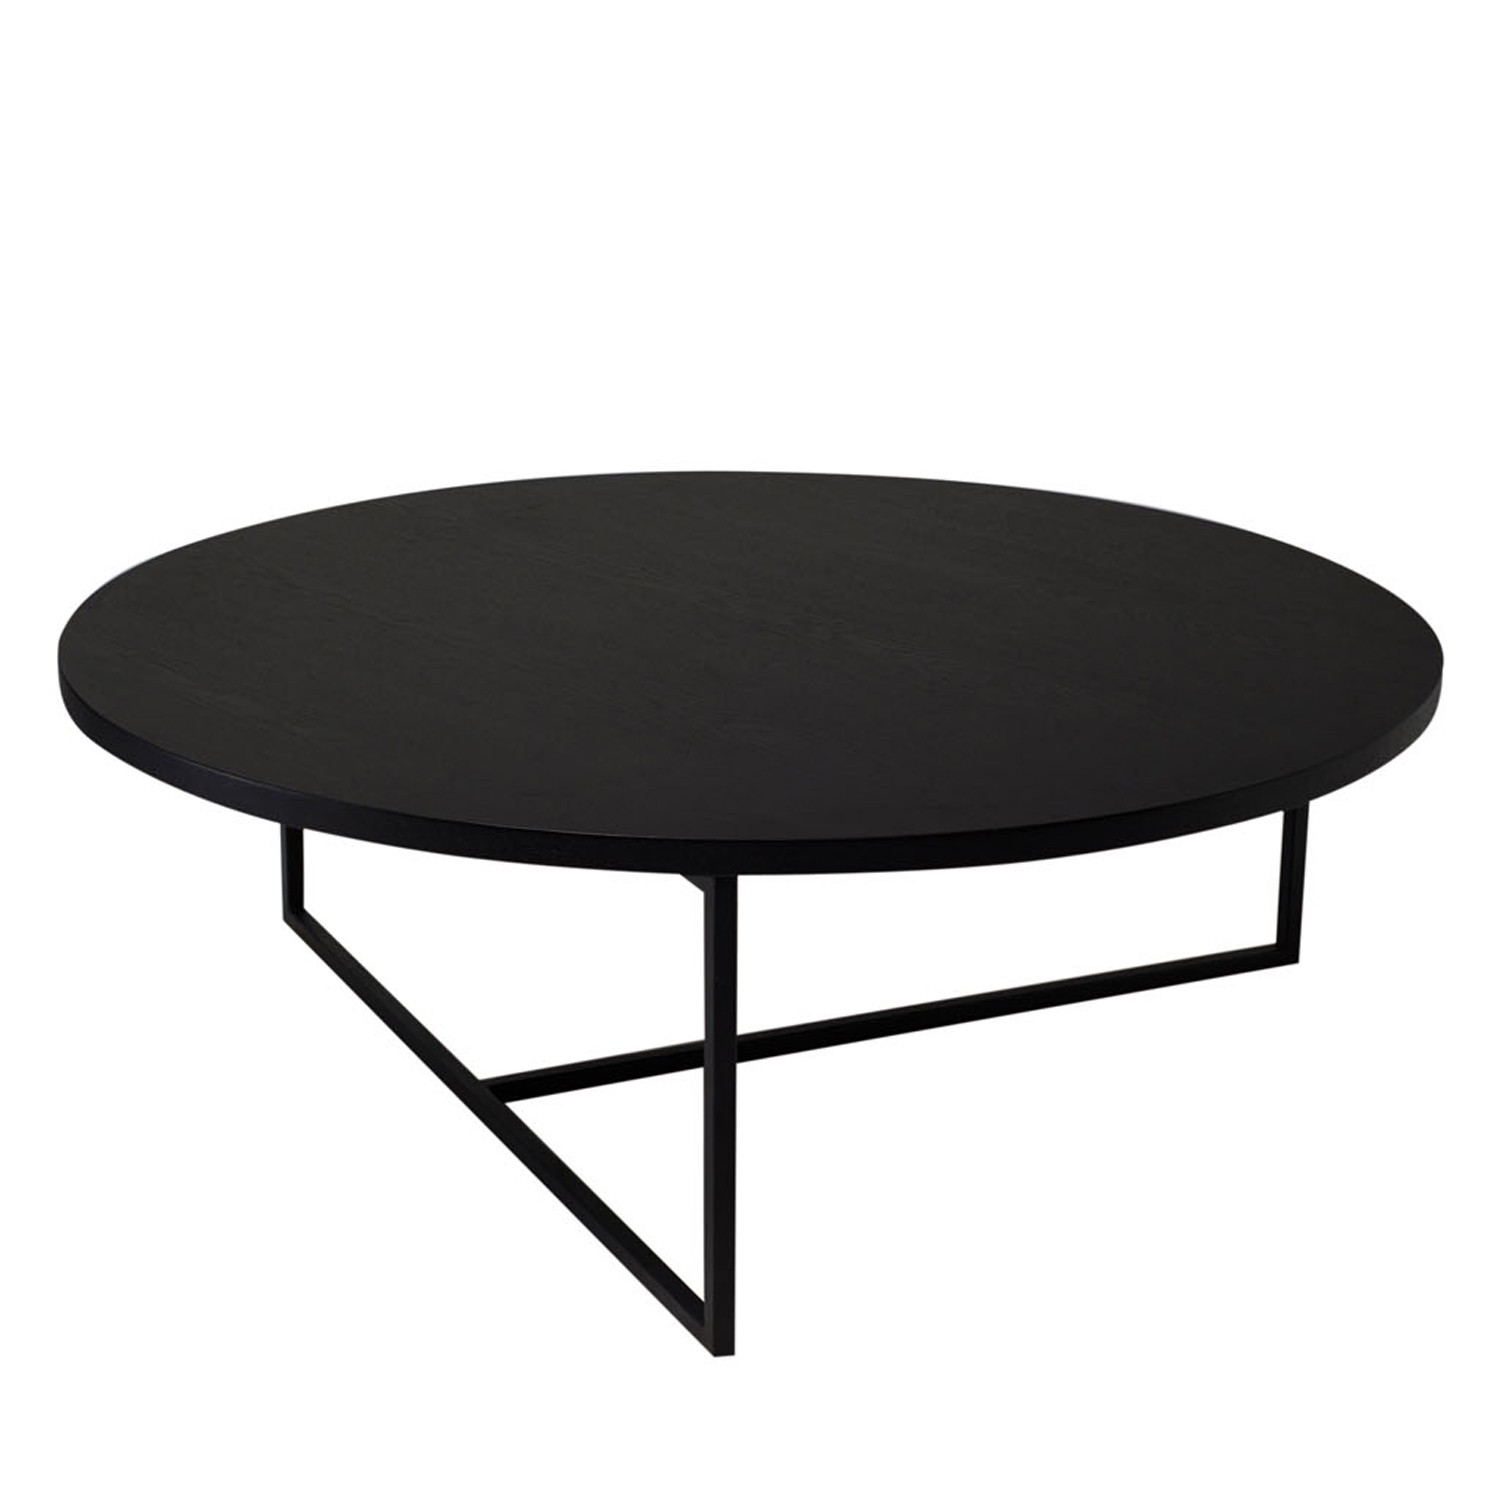 2017 Popular Black Round Coffee Tables with Storage